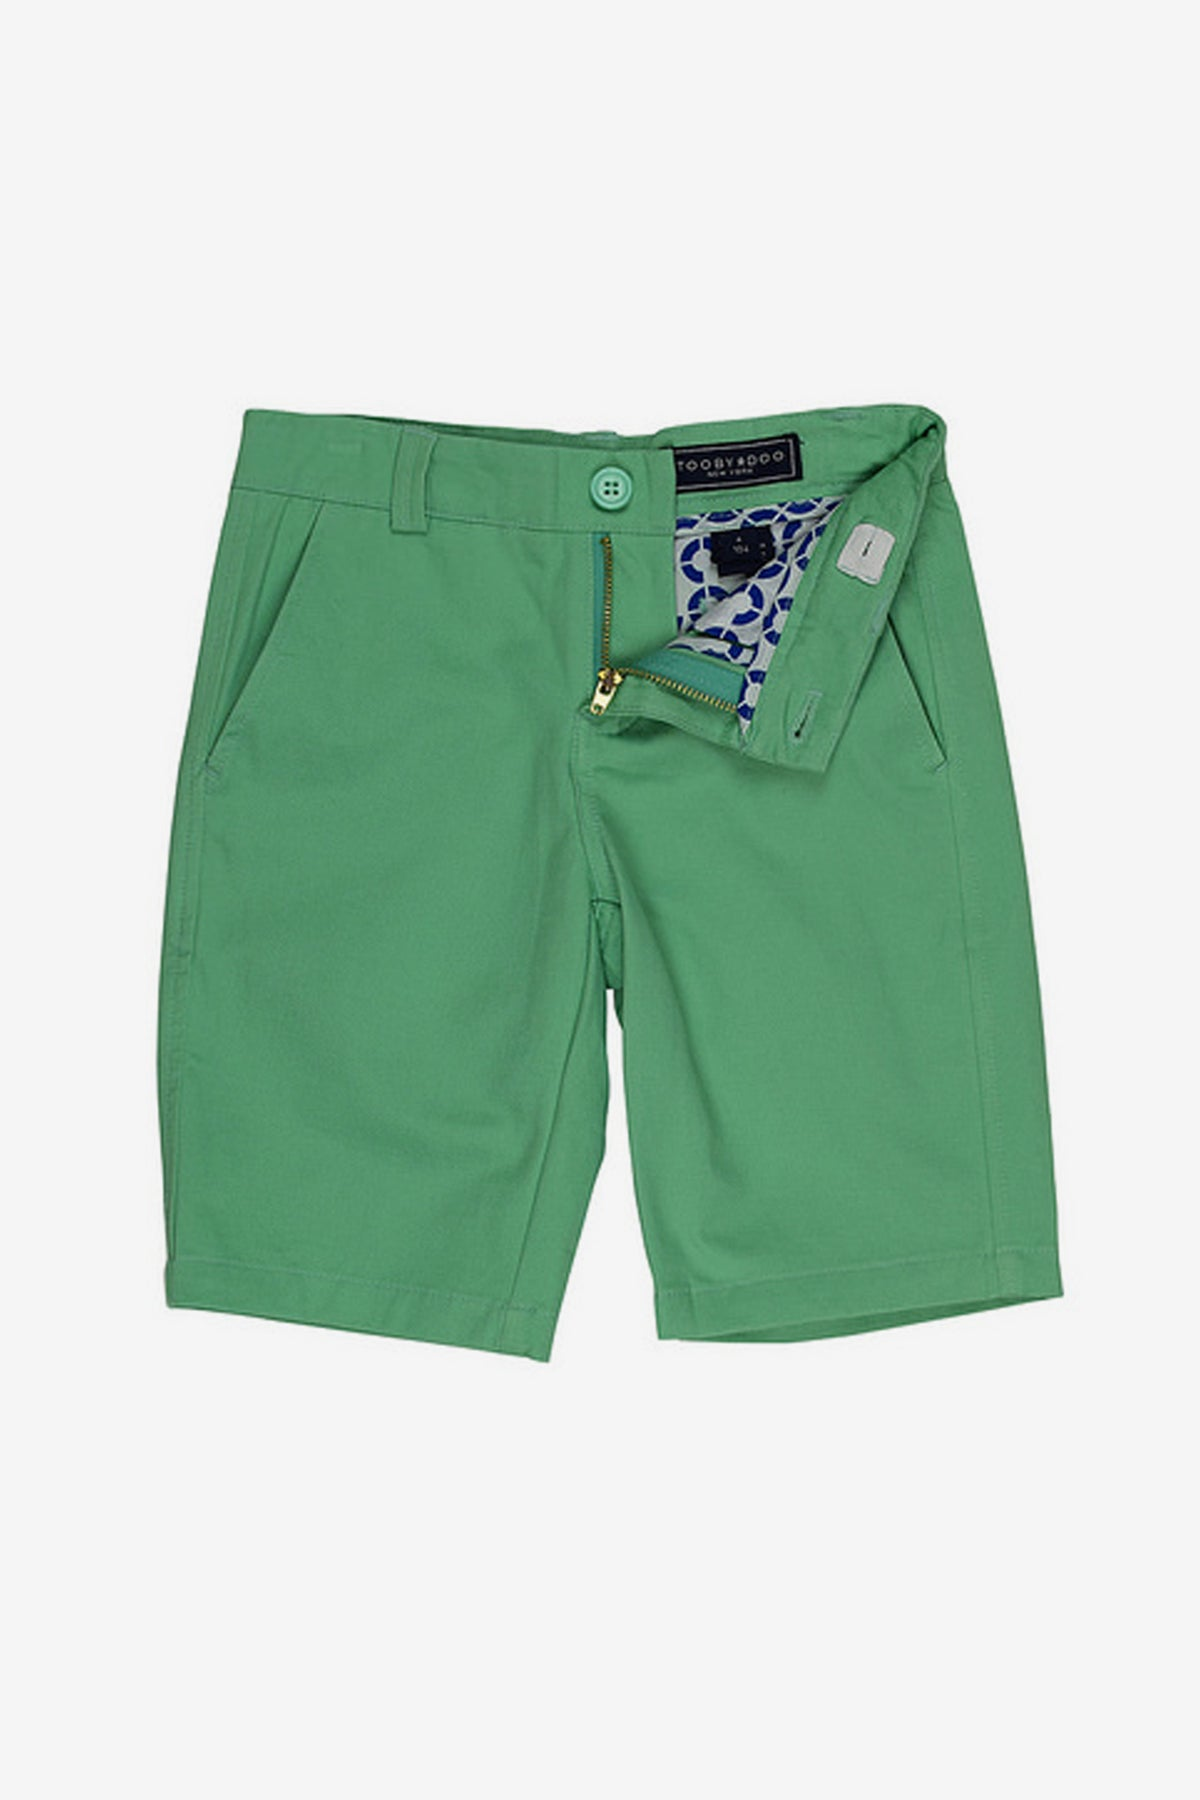 Toobydoo Quincy Boys Shorts